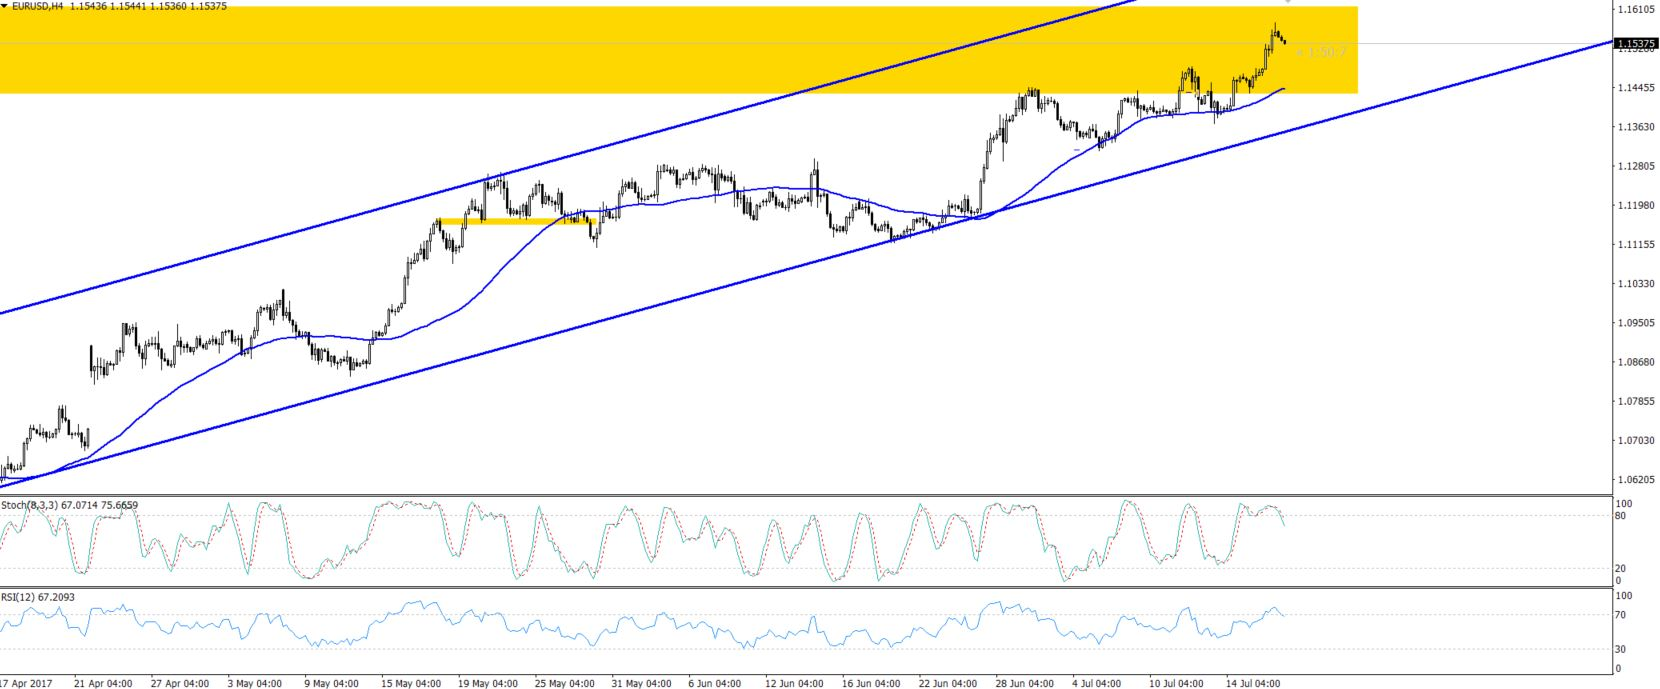 EURUSD - 4 Hours Chart - Bullish Channel